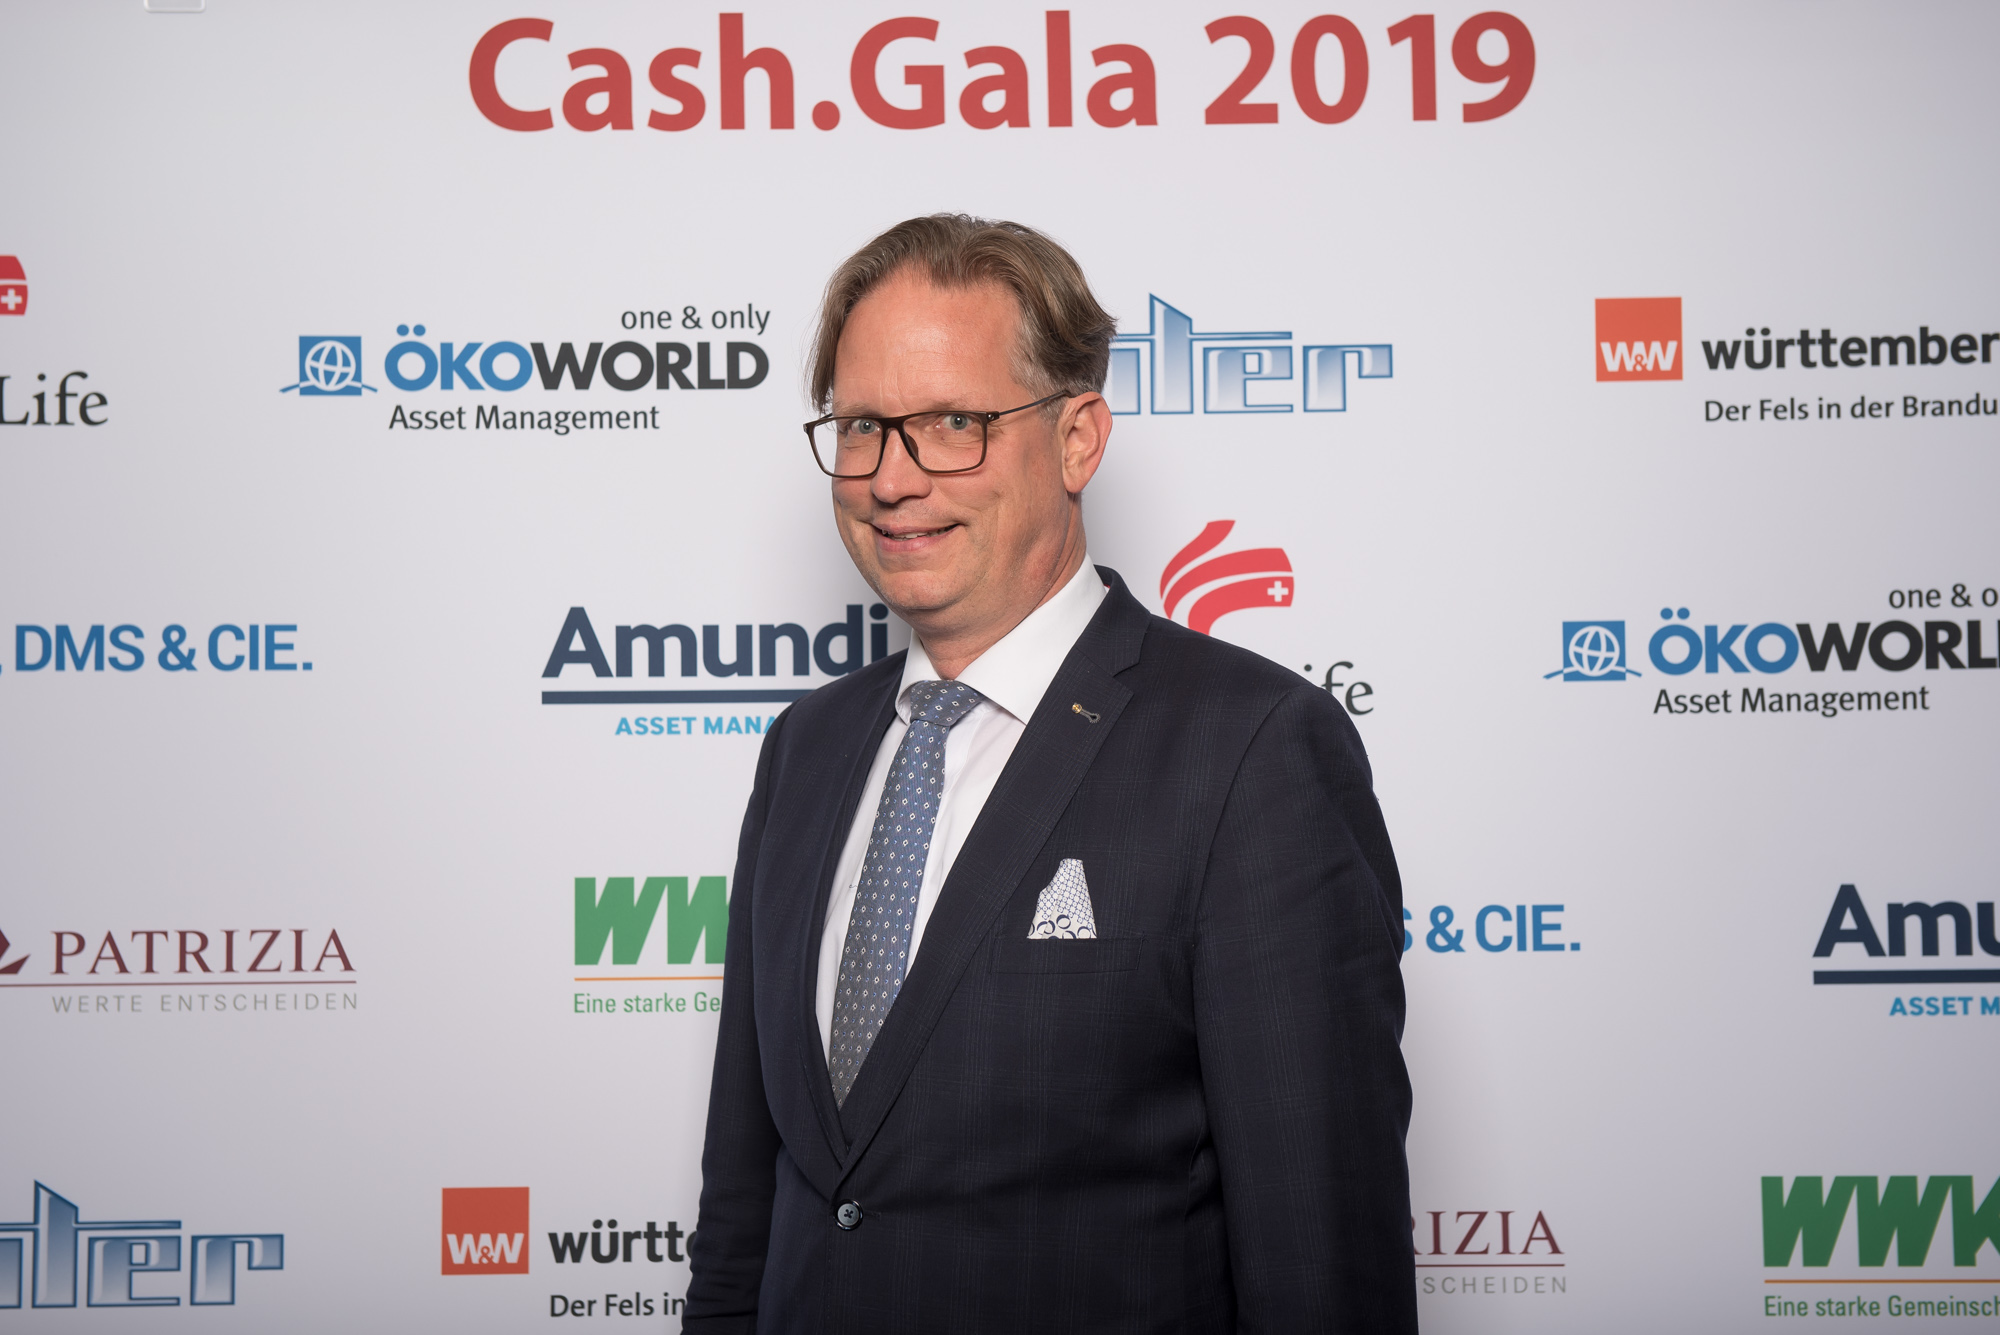 CashGala 2019 0003 AM DSC6916 in Cash.Gala 2019